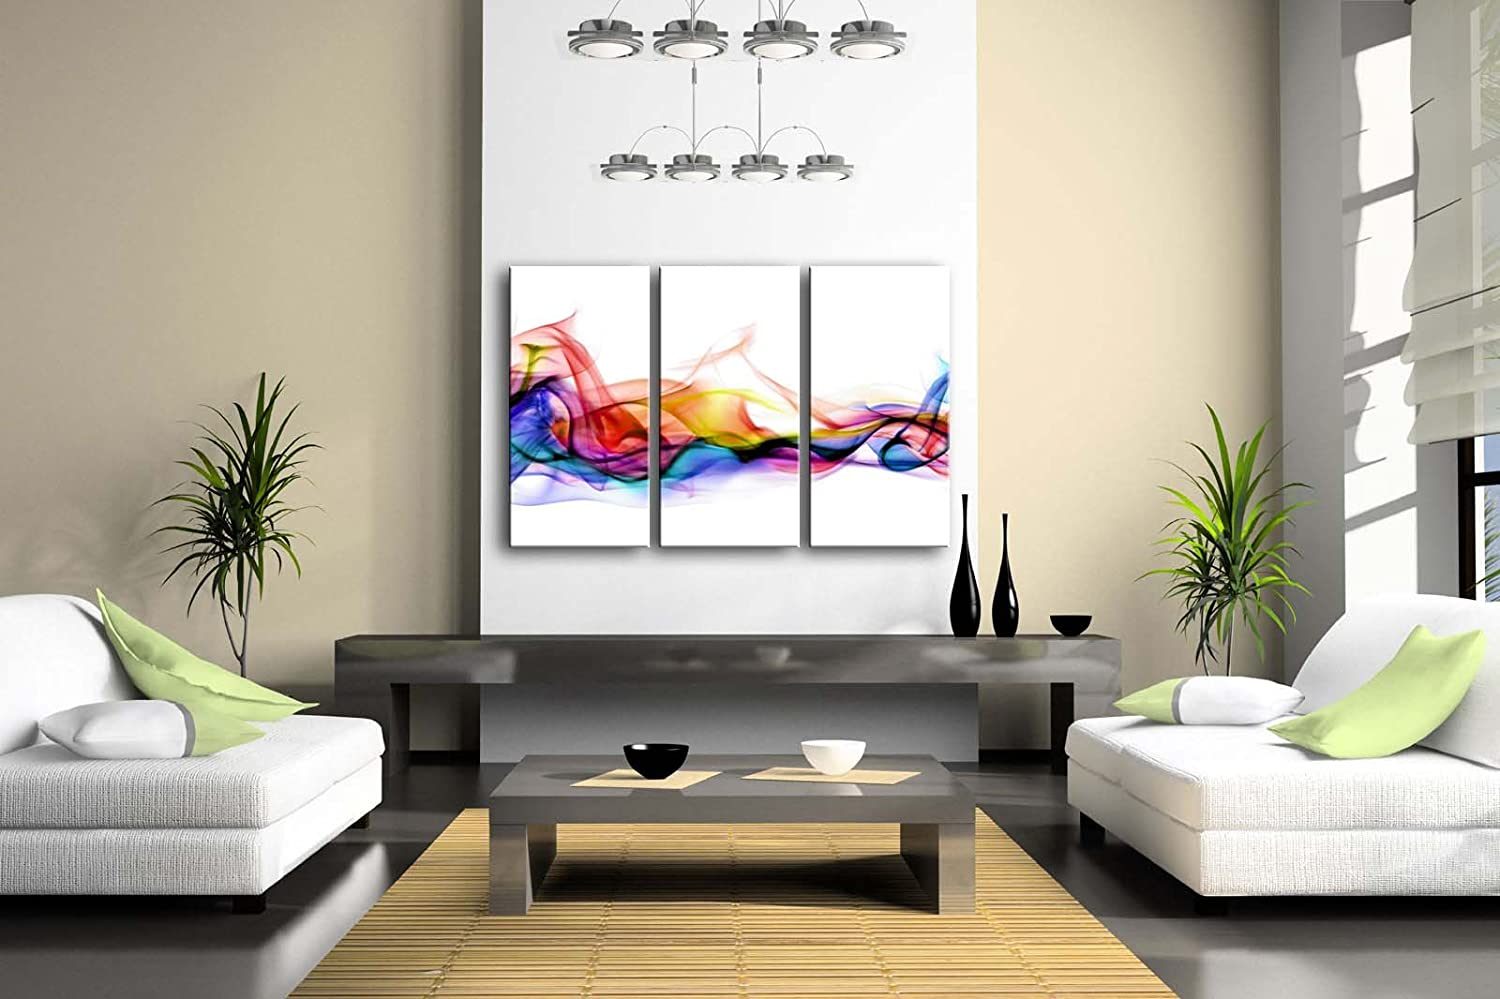 3 Panel Wall Art Fresh Look Color Abstract Smoke Colorful White